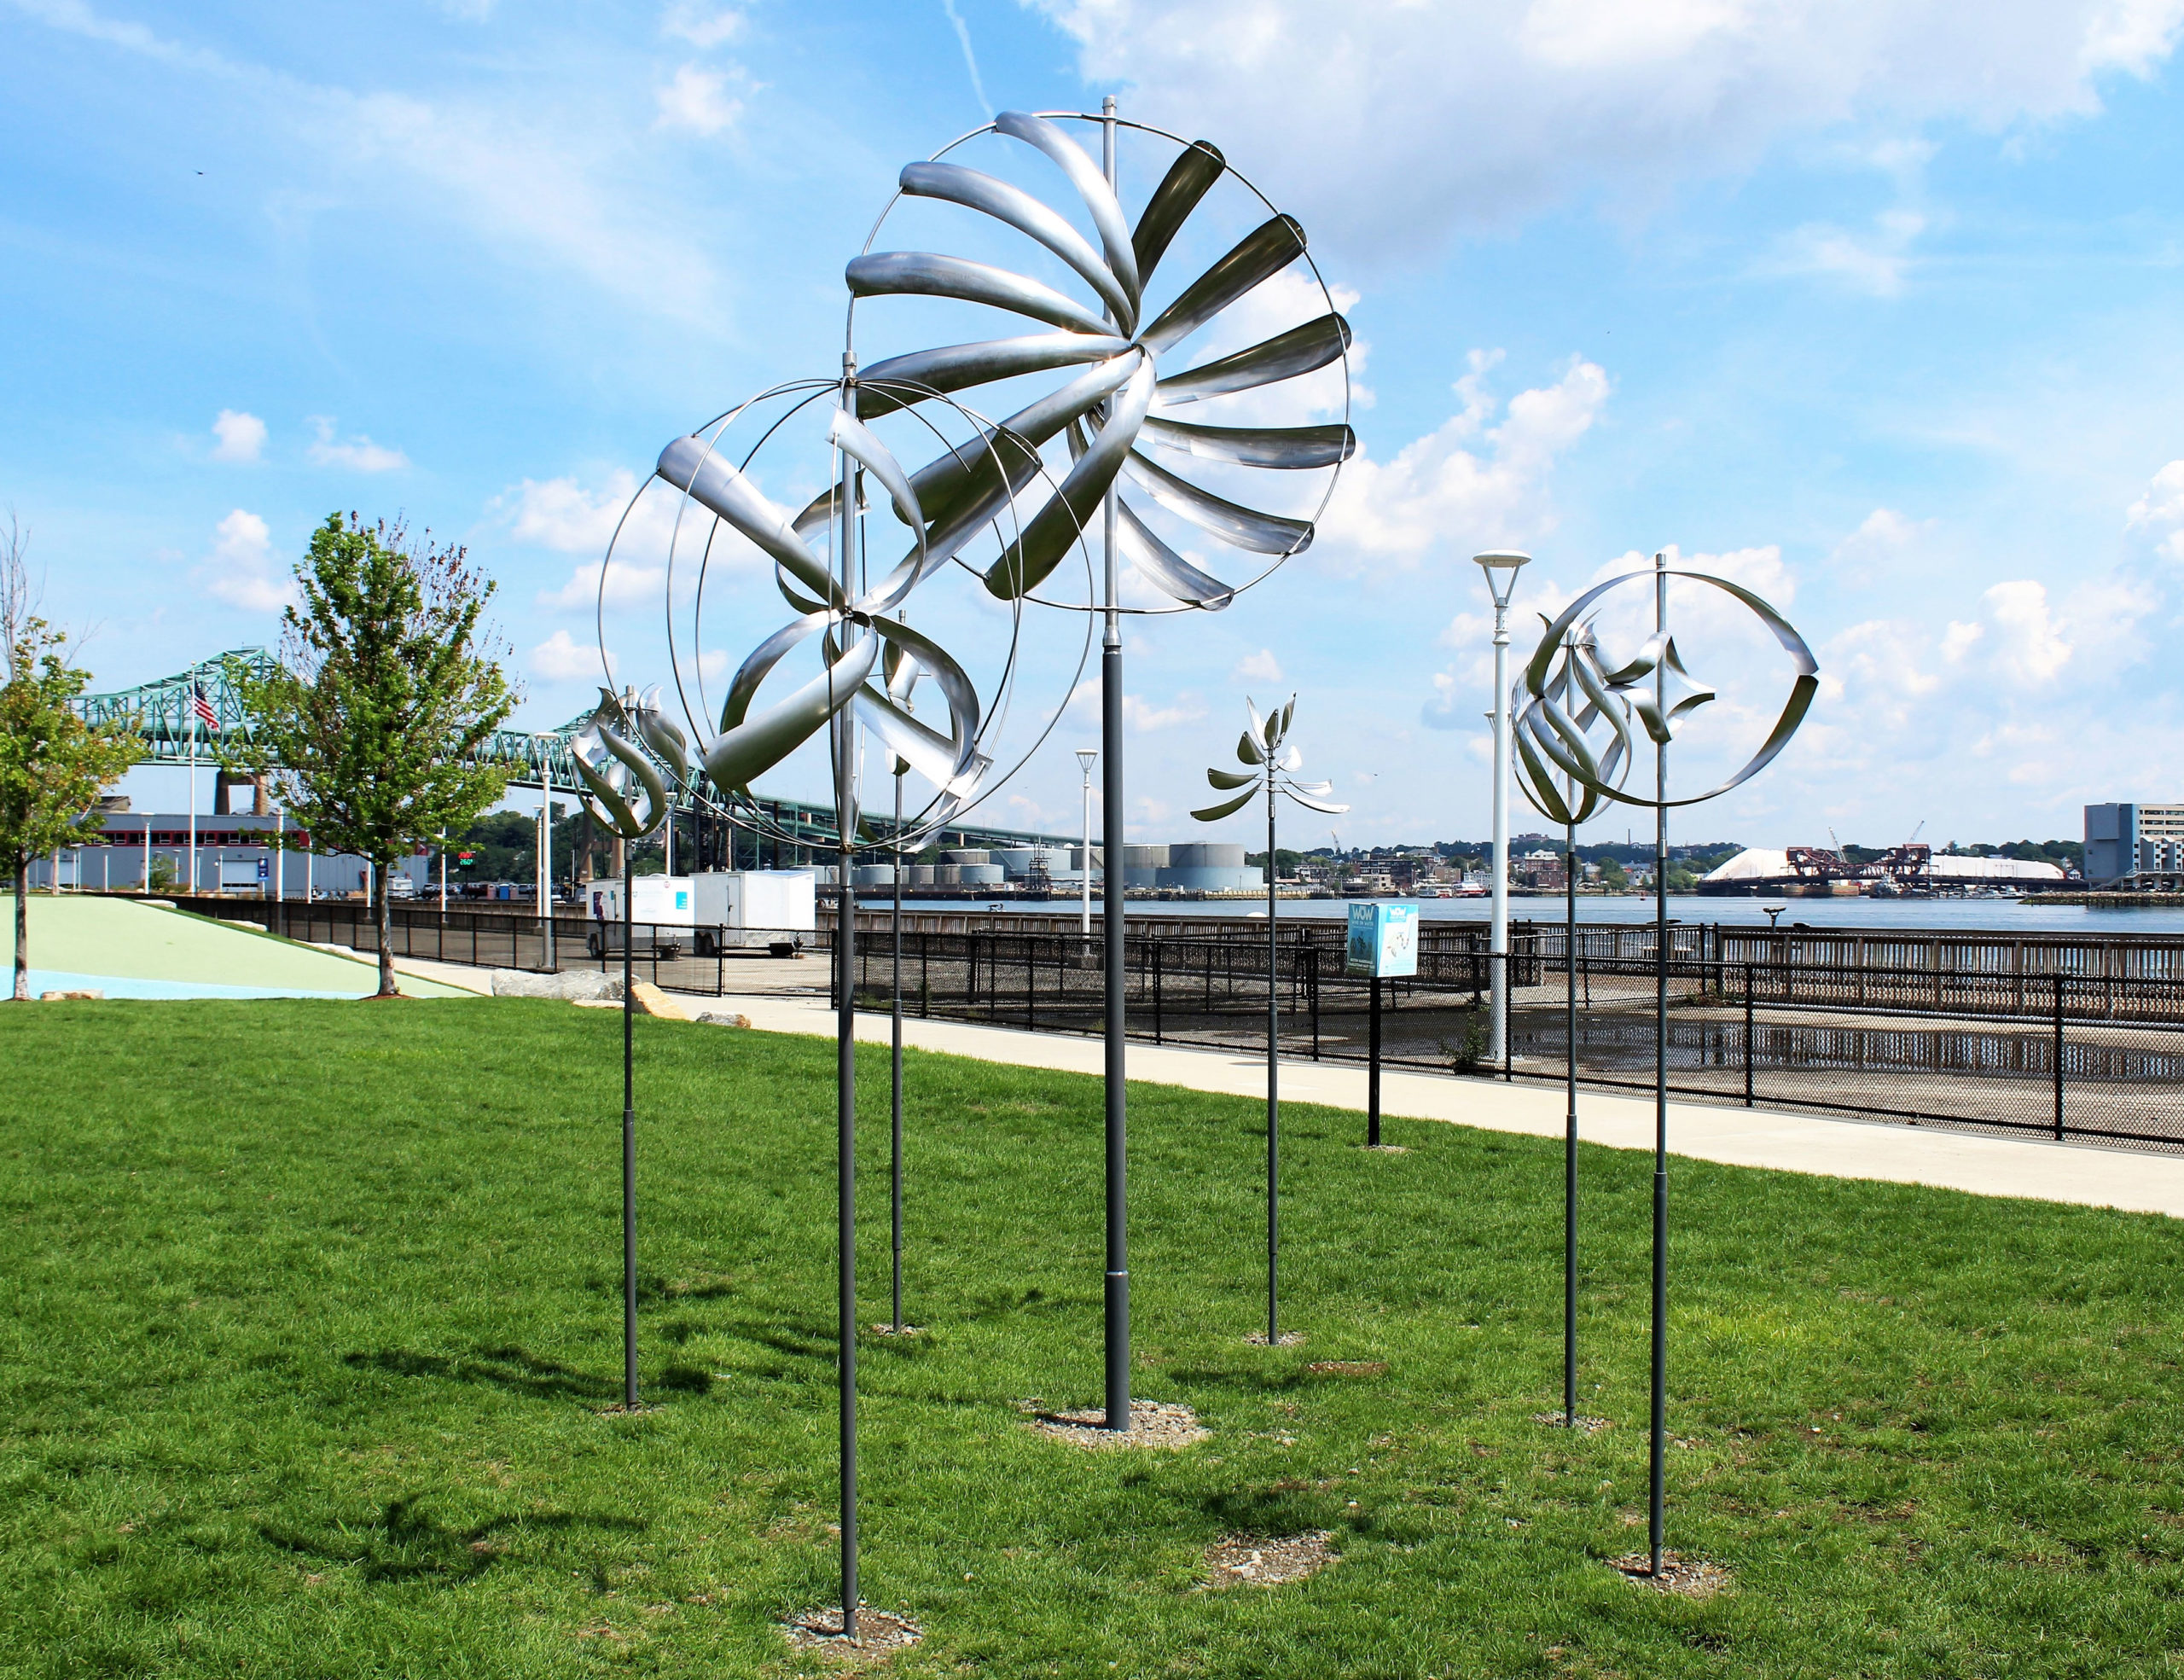 WOW: Wind On Water Wind Sculptures Exhibit by Lyman Whitaker provides Respite during Pandemic